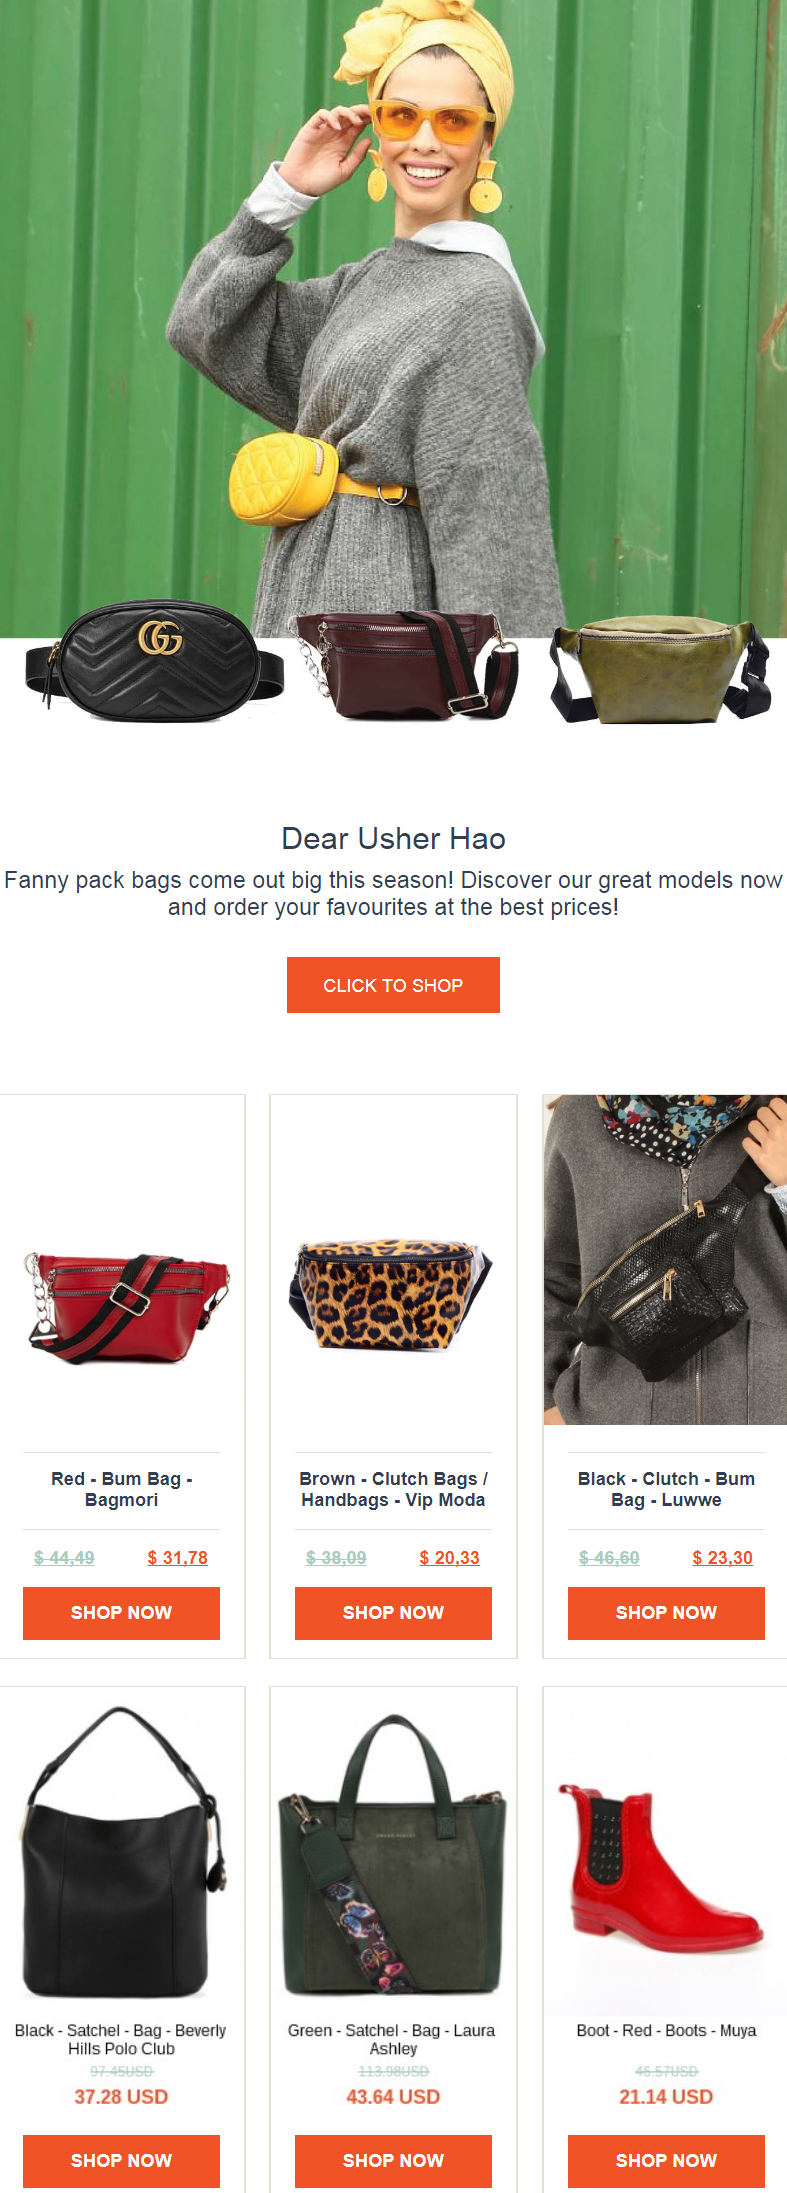 Fanny pack bags come out big this season! Discover the great models now and order your favourites at...